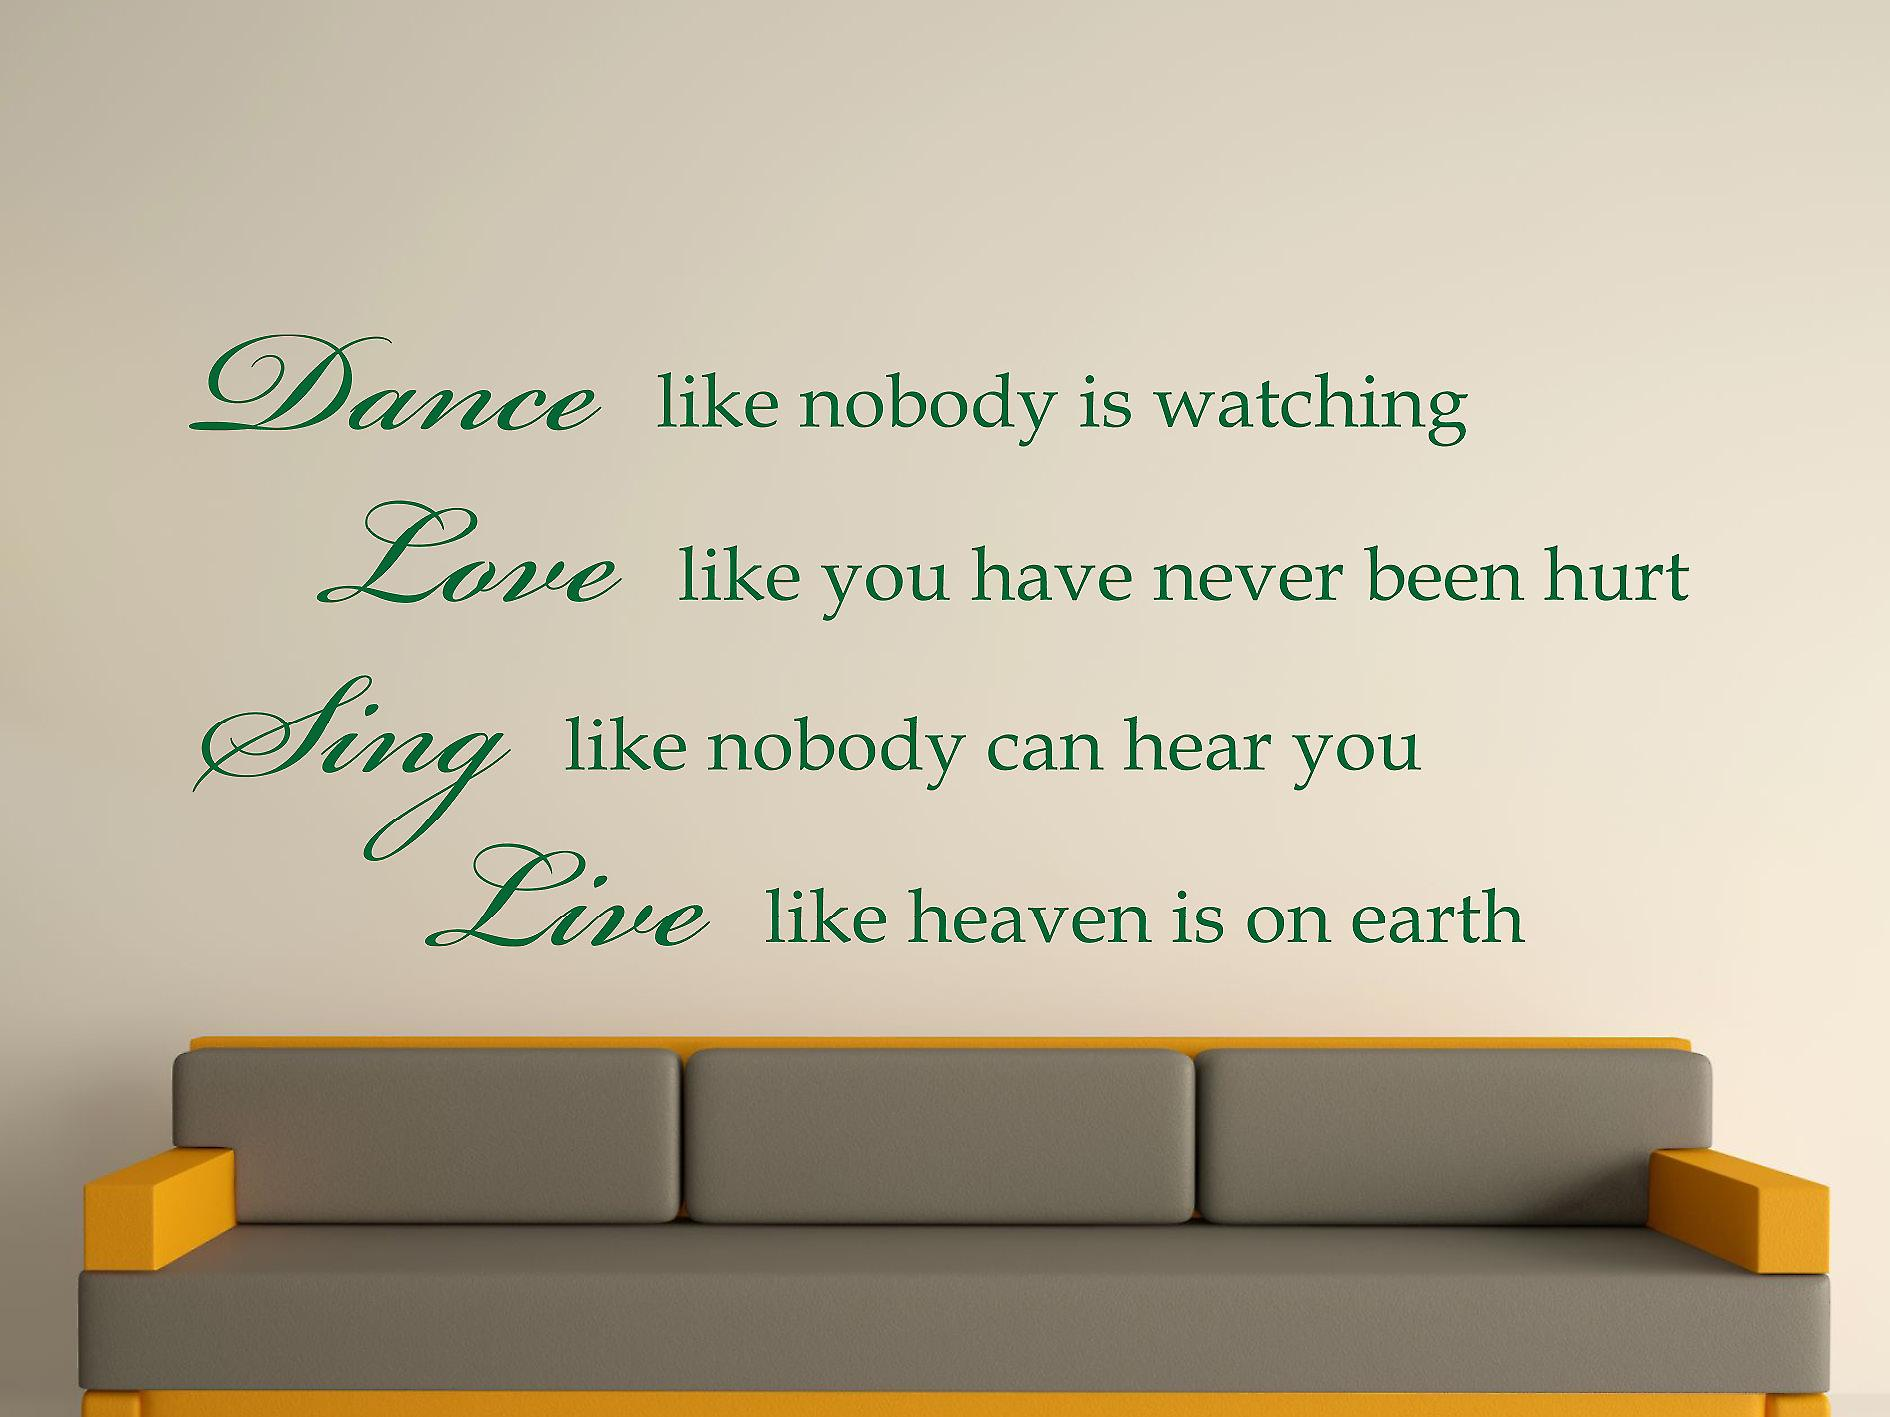 Danse comme personne observe Wall Sticker Art - Racing Green